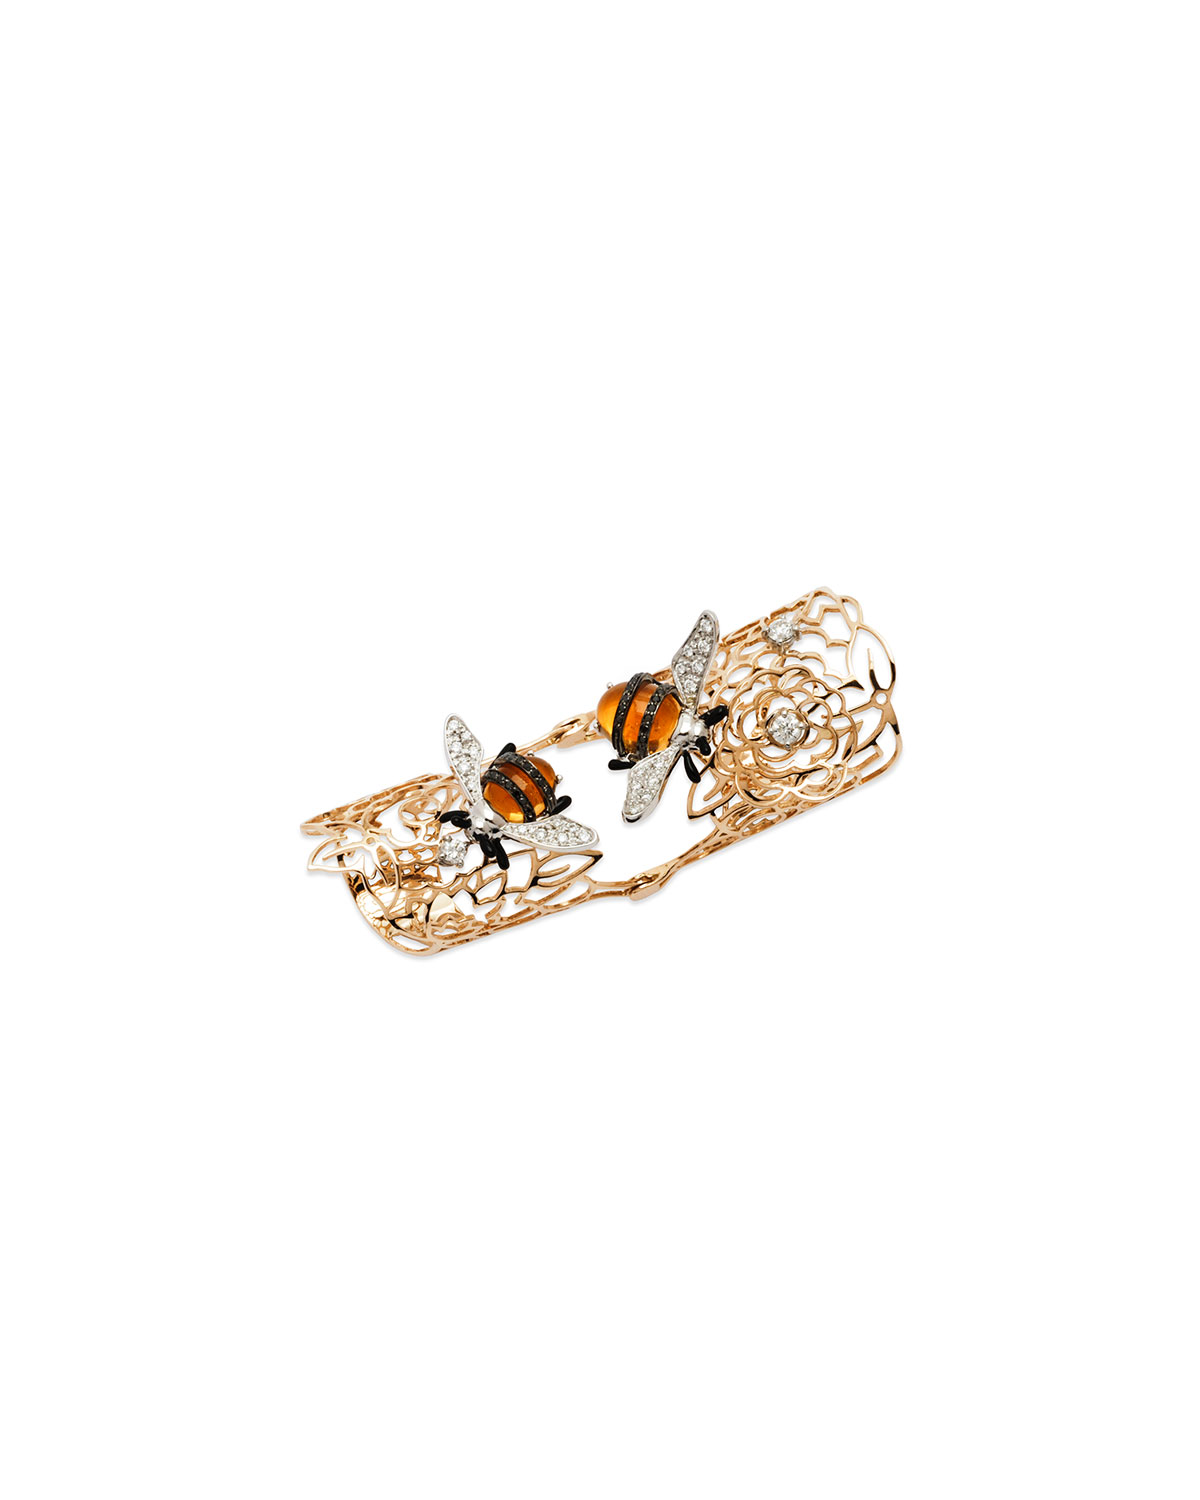 STAURINO FRATELLI 18K Rose Gold Moresca Bumble Bee Hinged Ring